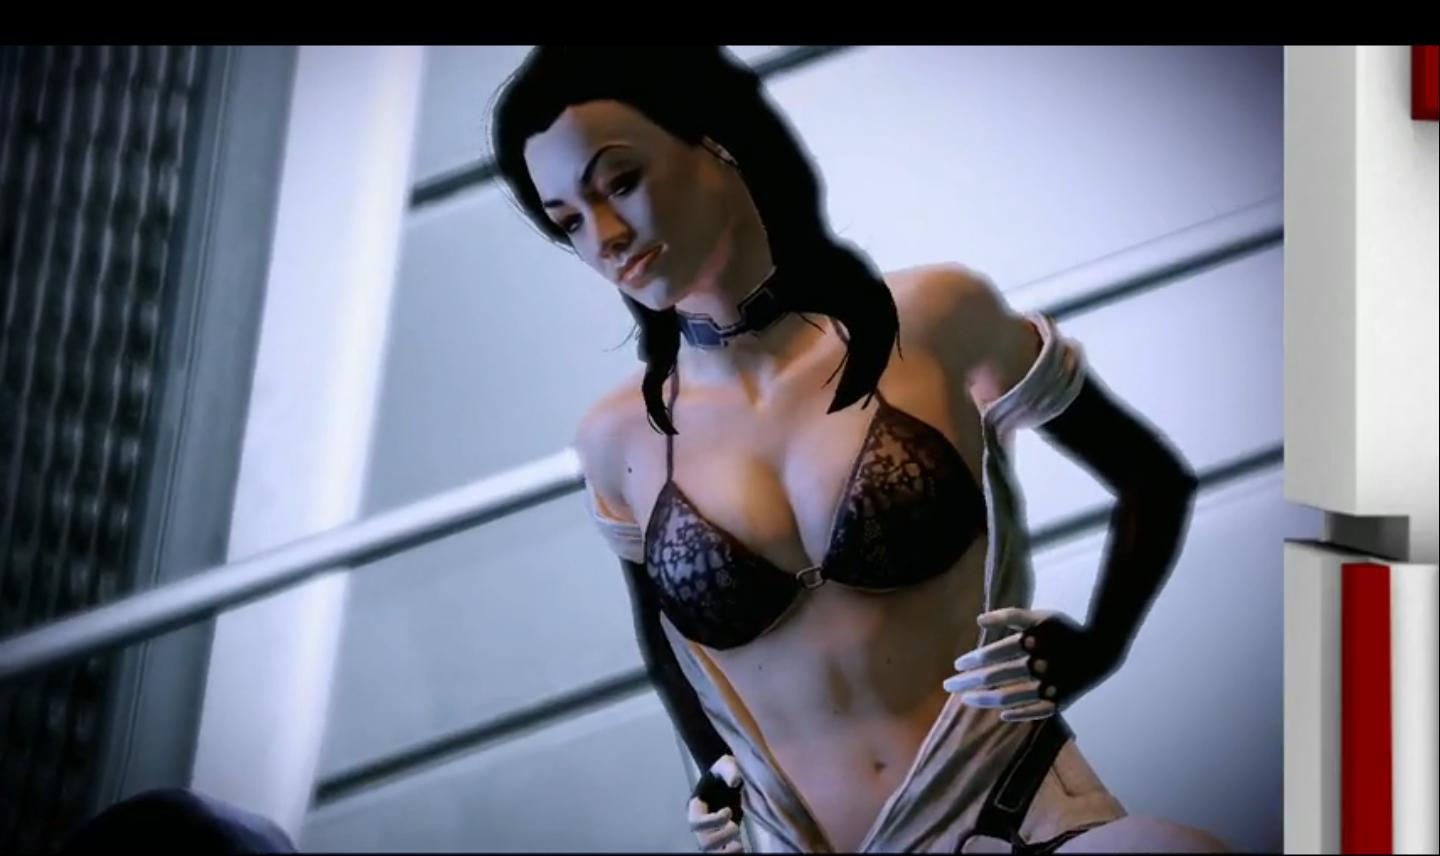 Mass effect 3 nudity patch softcore vids